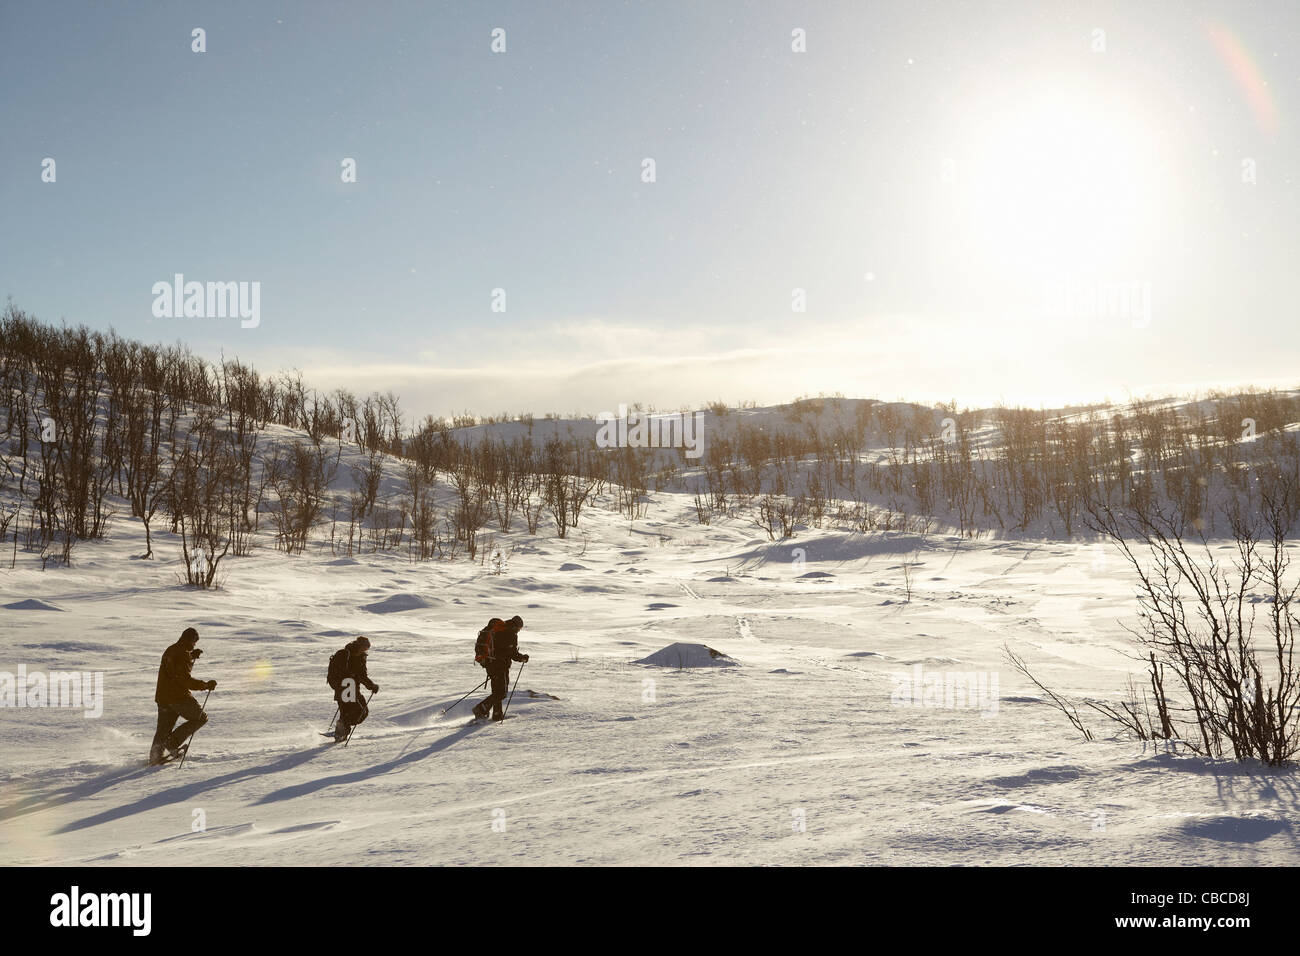 Cross-country skiers walking in snow - Stock Image